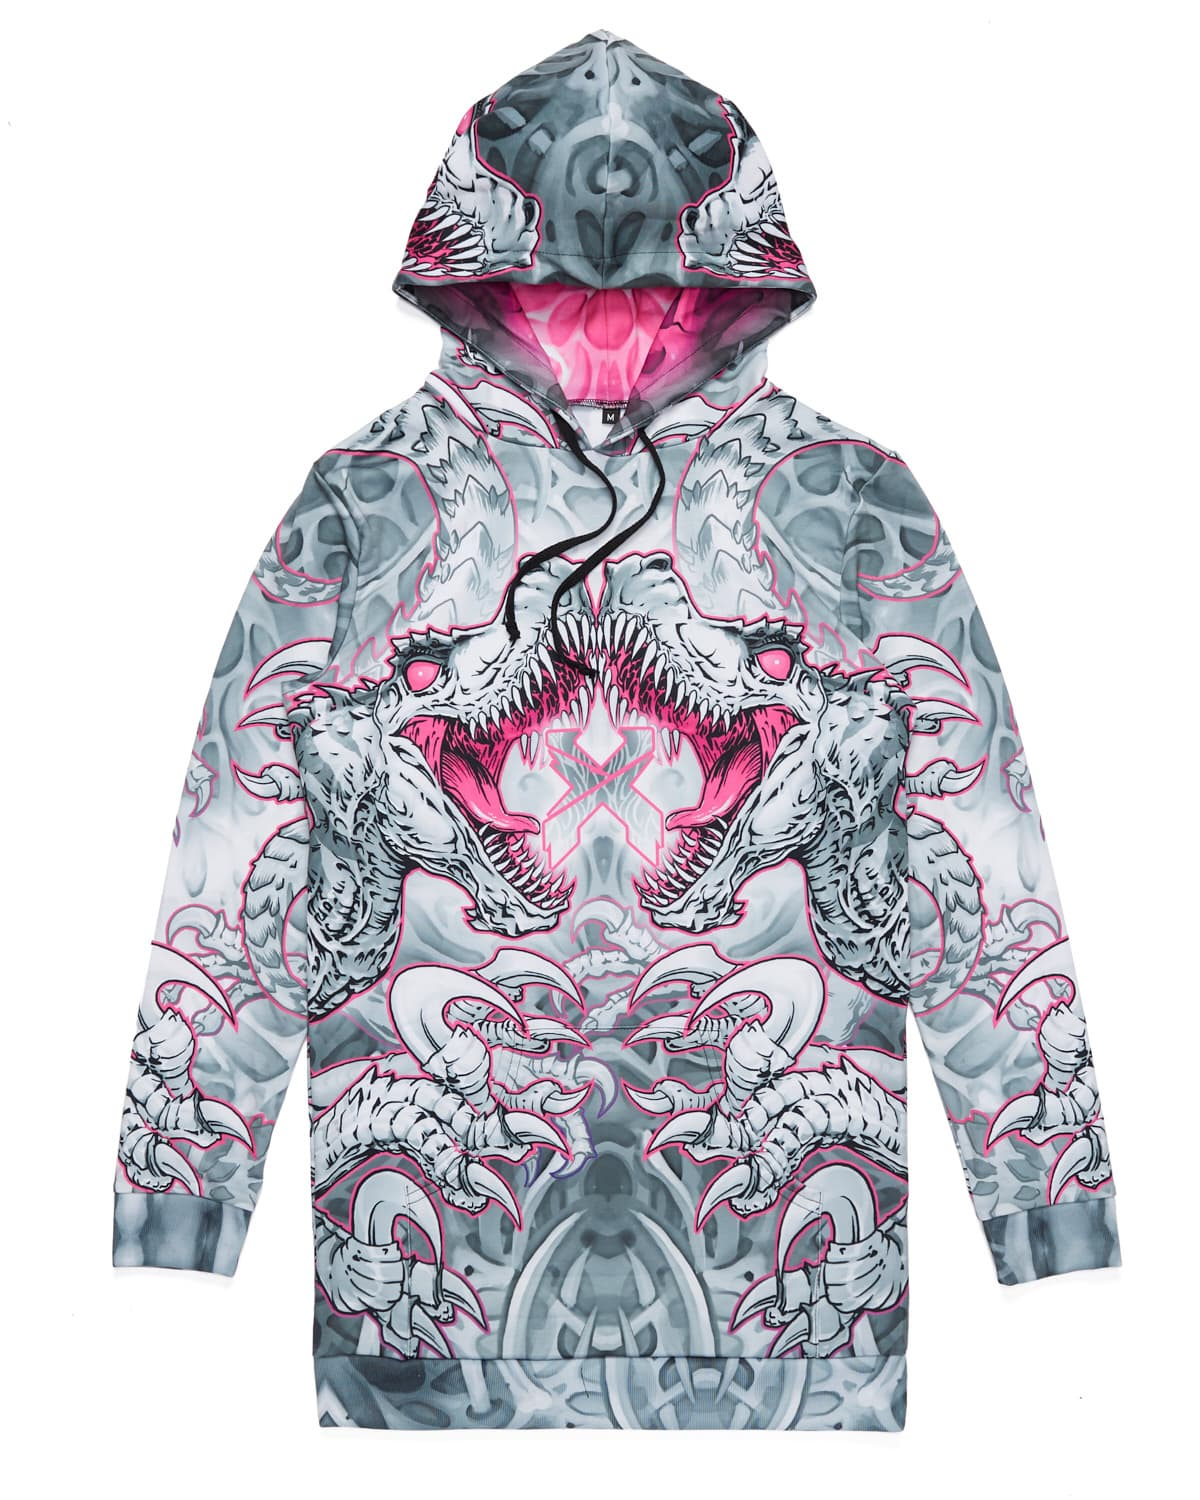 'Raptor Attack' Dye Sub Hoodie Dress - Pink